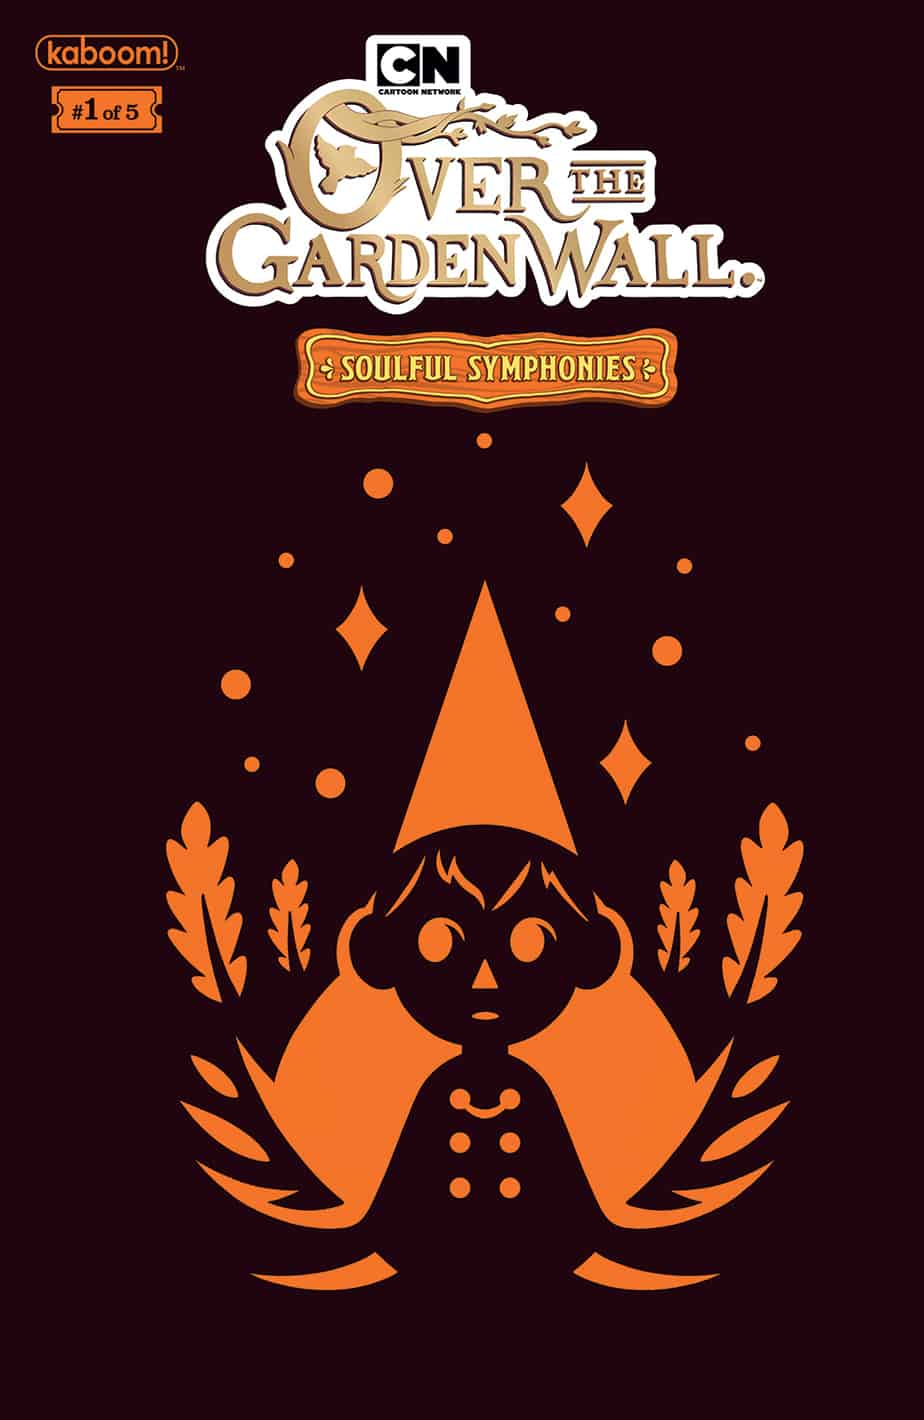 Over The Garden Wall™: Soulful Symphonies #1 - Variant Cover